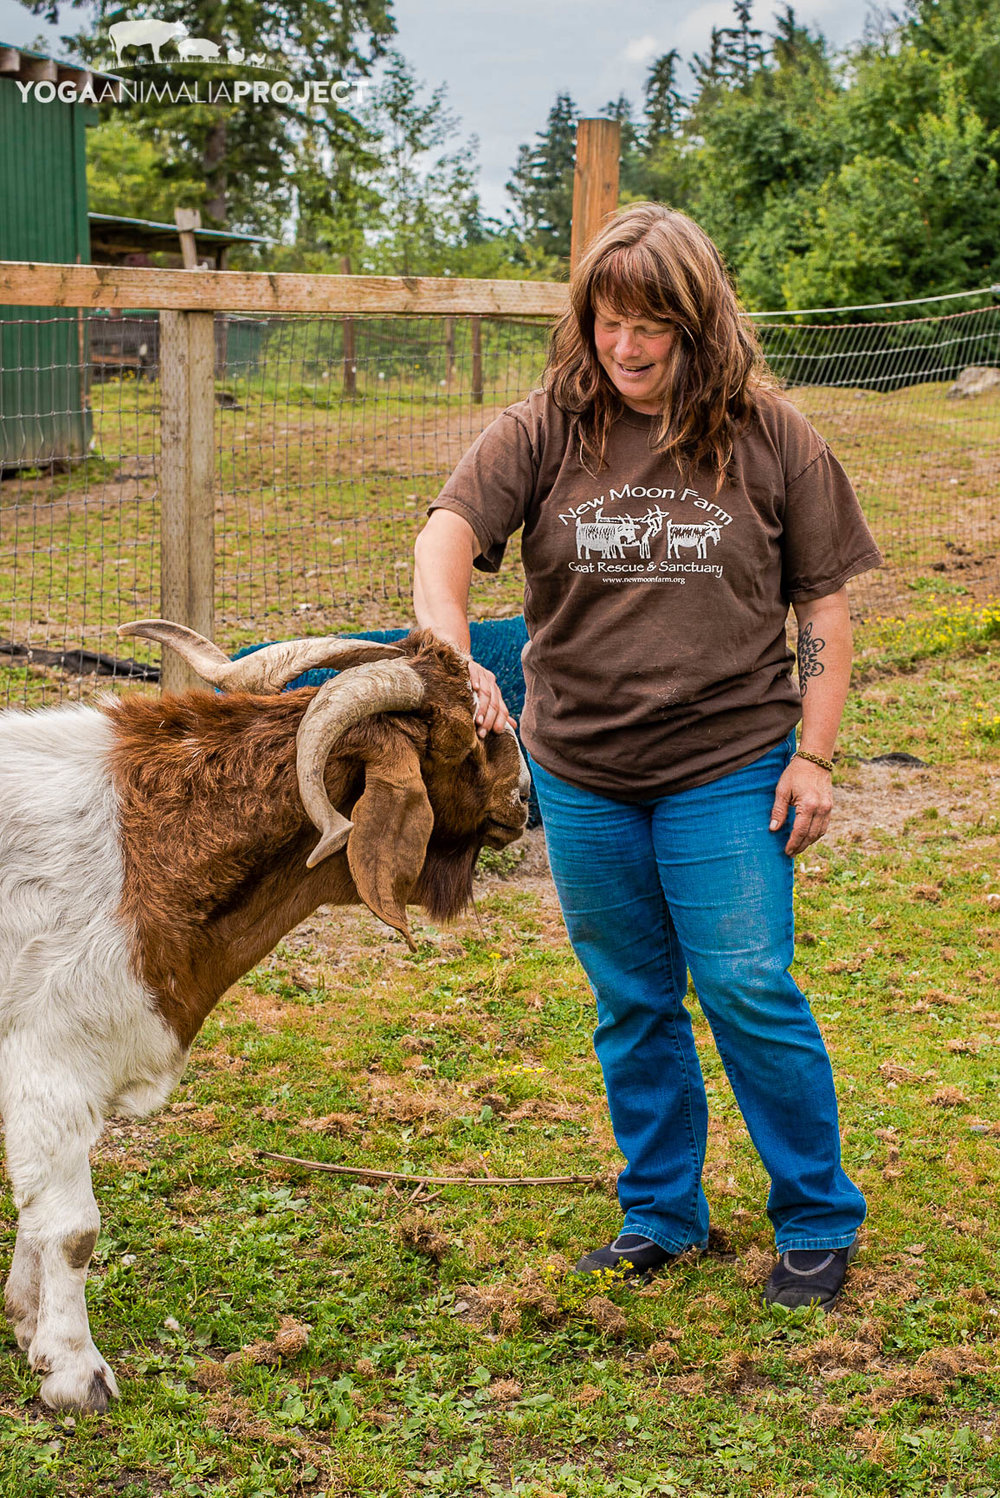 Yoga Animalia: Caprine - Jake - New Moon Farm Goat Rescue & SanctuaryArlington, WashingtonJake with sanctuary founder & farm director Ellen Felsenthal